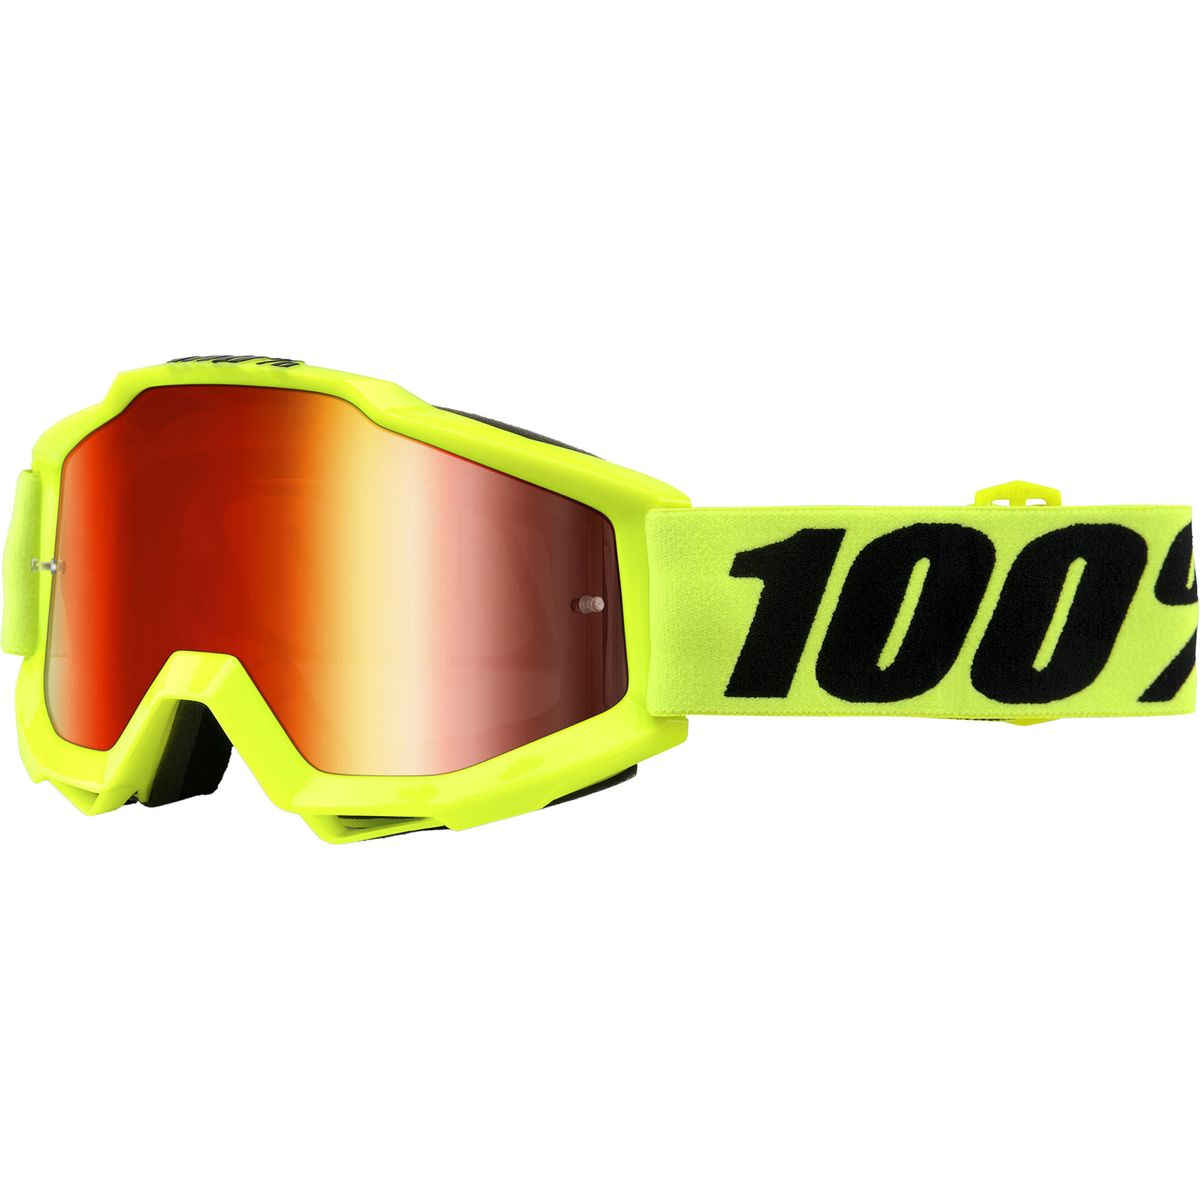 100 ACCURI Goggles Fluo Yellow Mirror Red Lens One Size